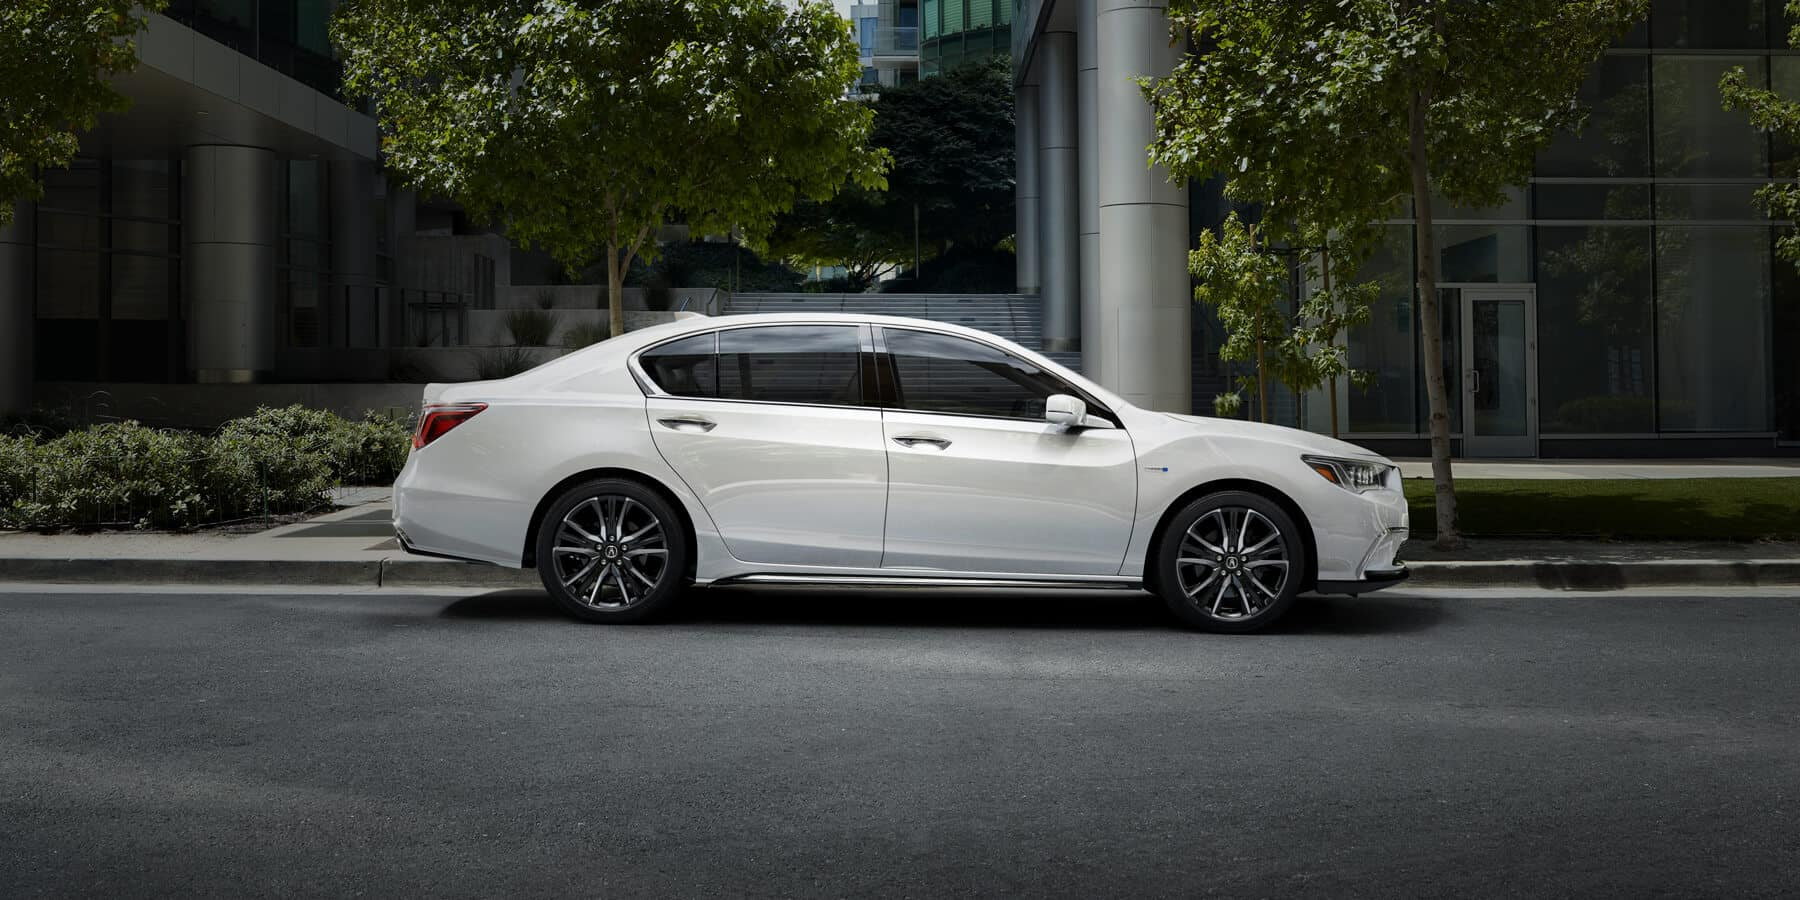 2019 Acura RLX Platinum White Pearl Side Profile HP Slide